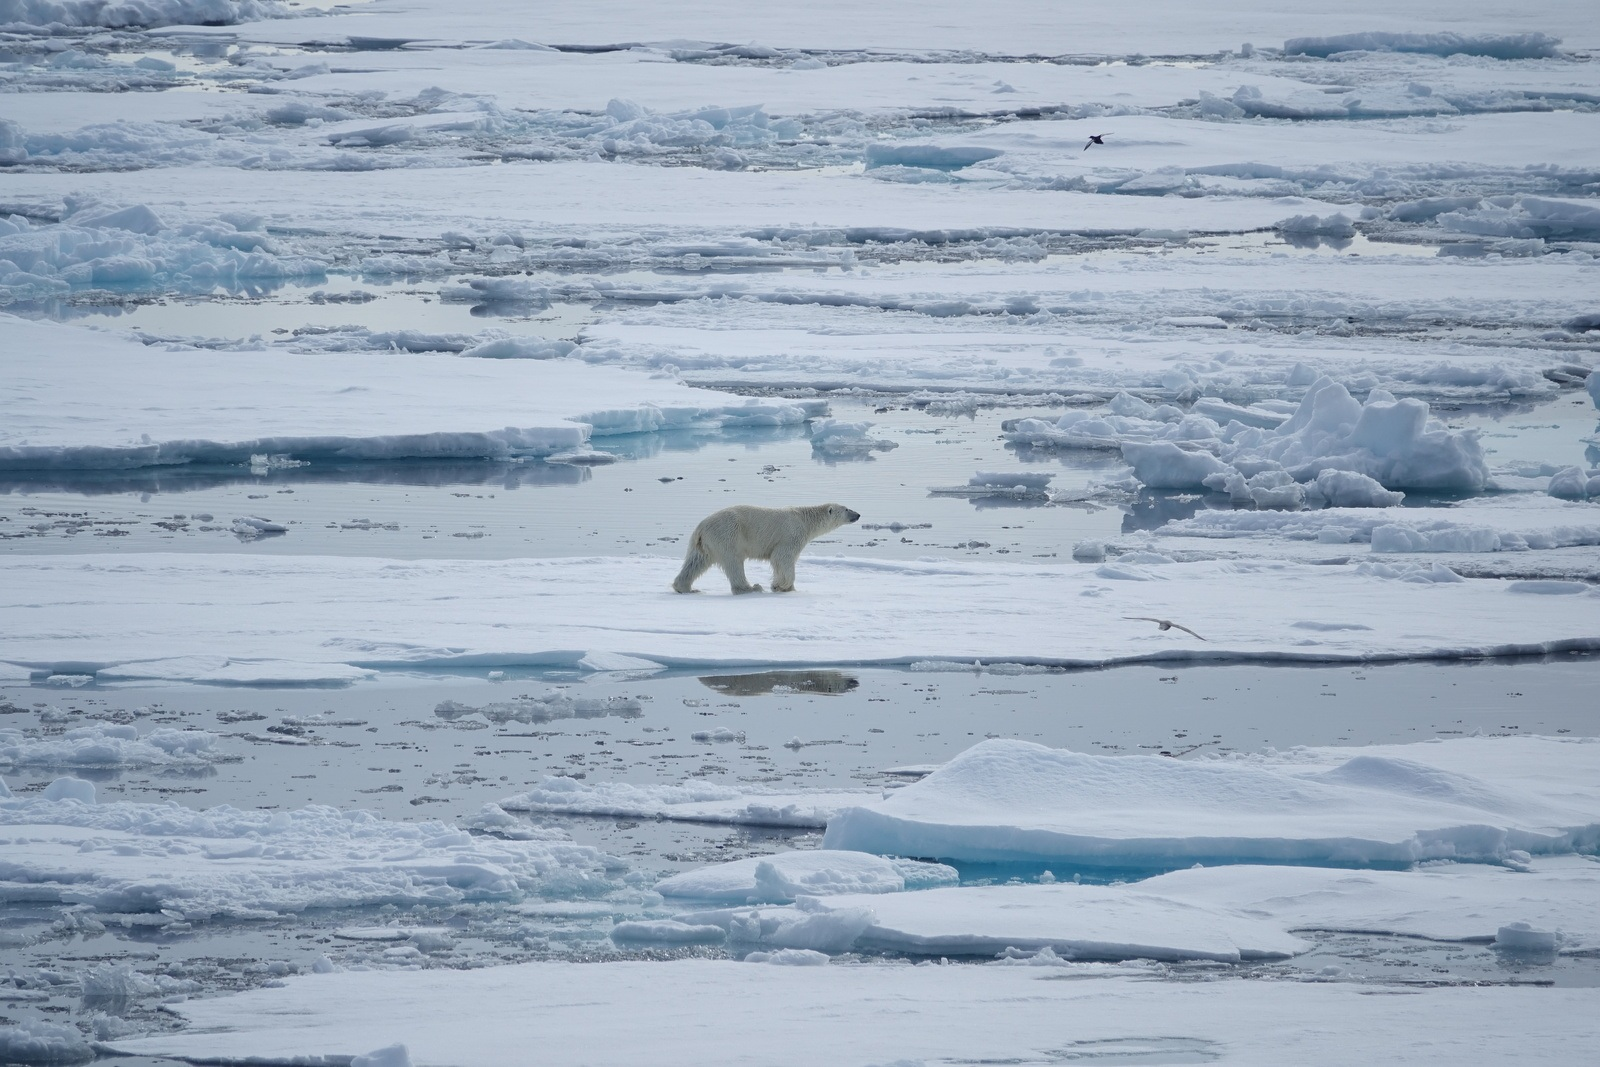 an intimate glimpse at arctic wildlife in a year of record ice melt